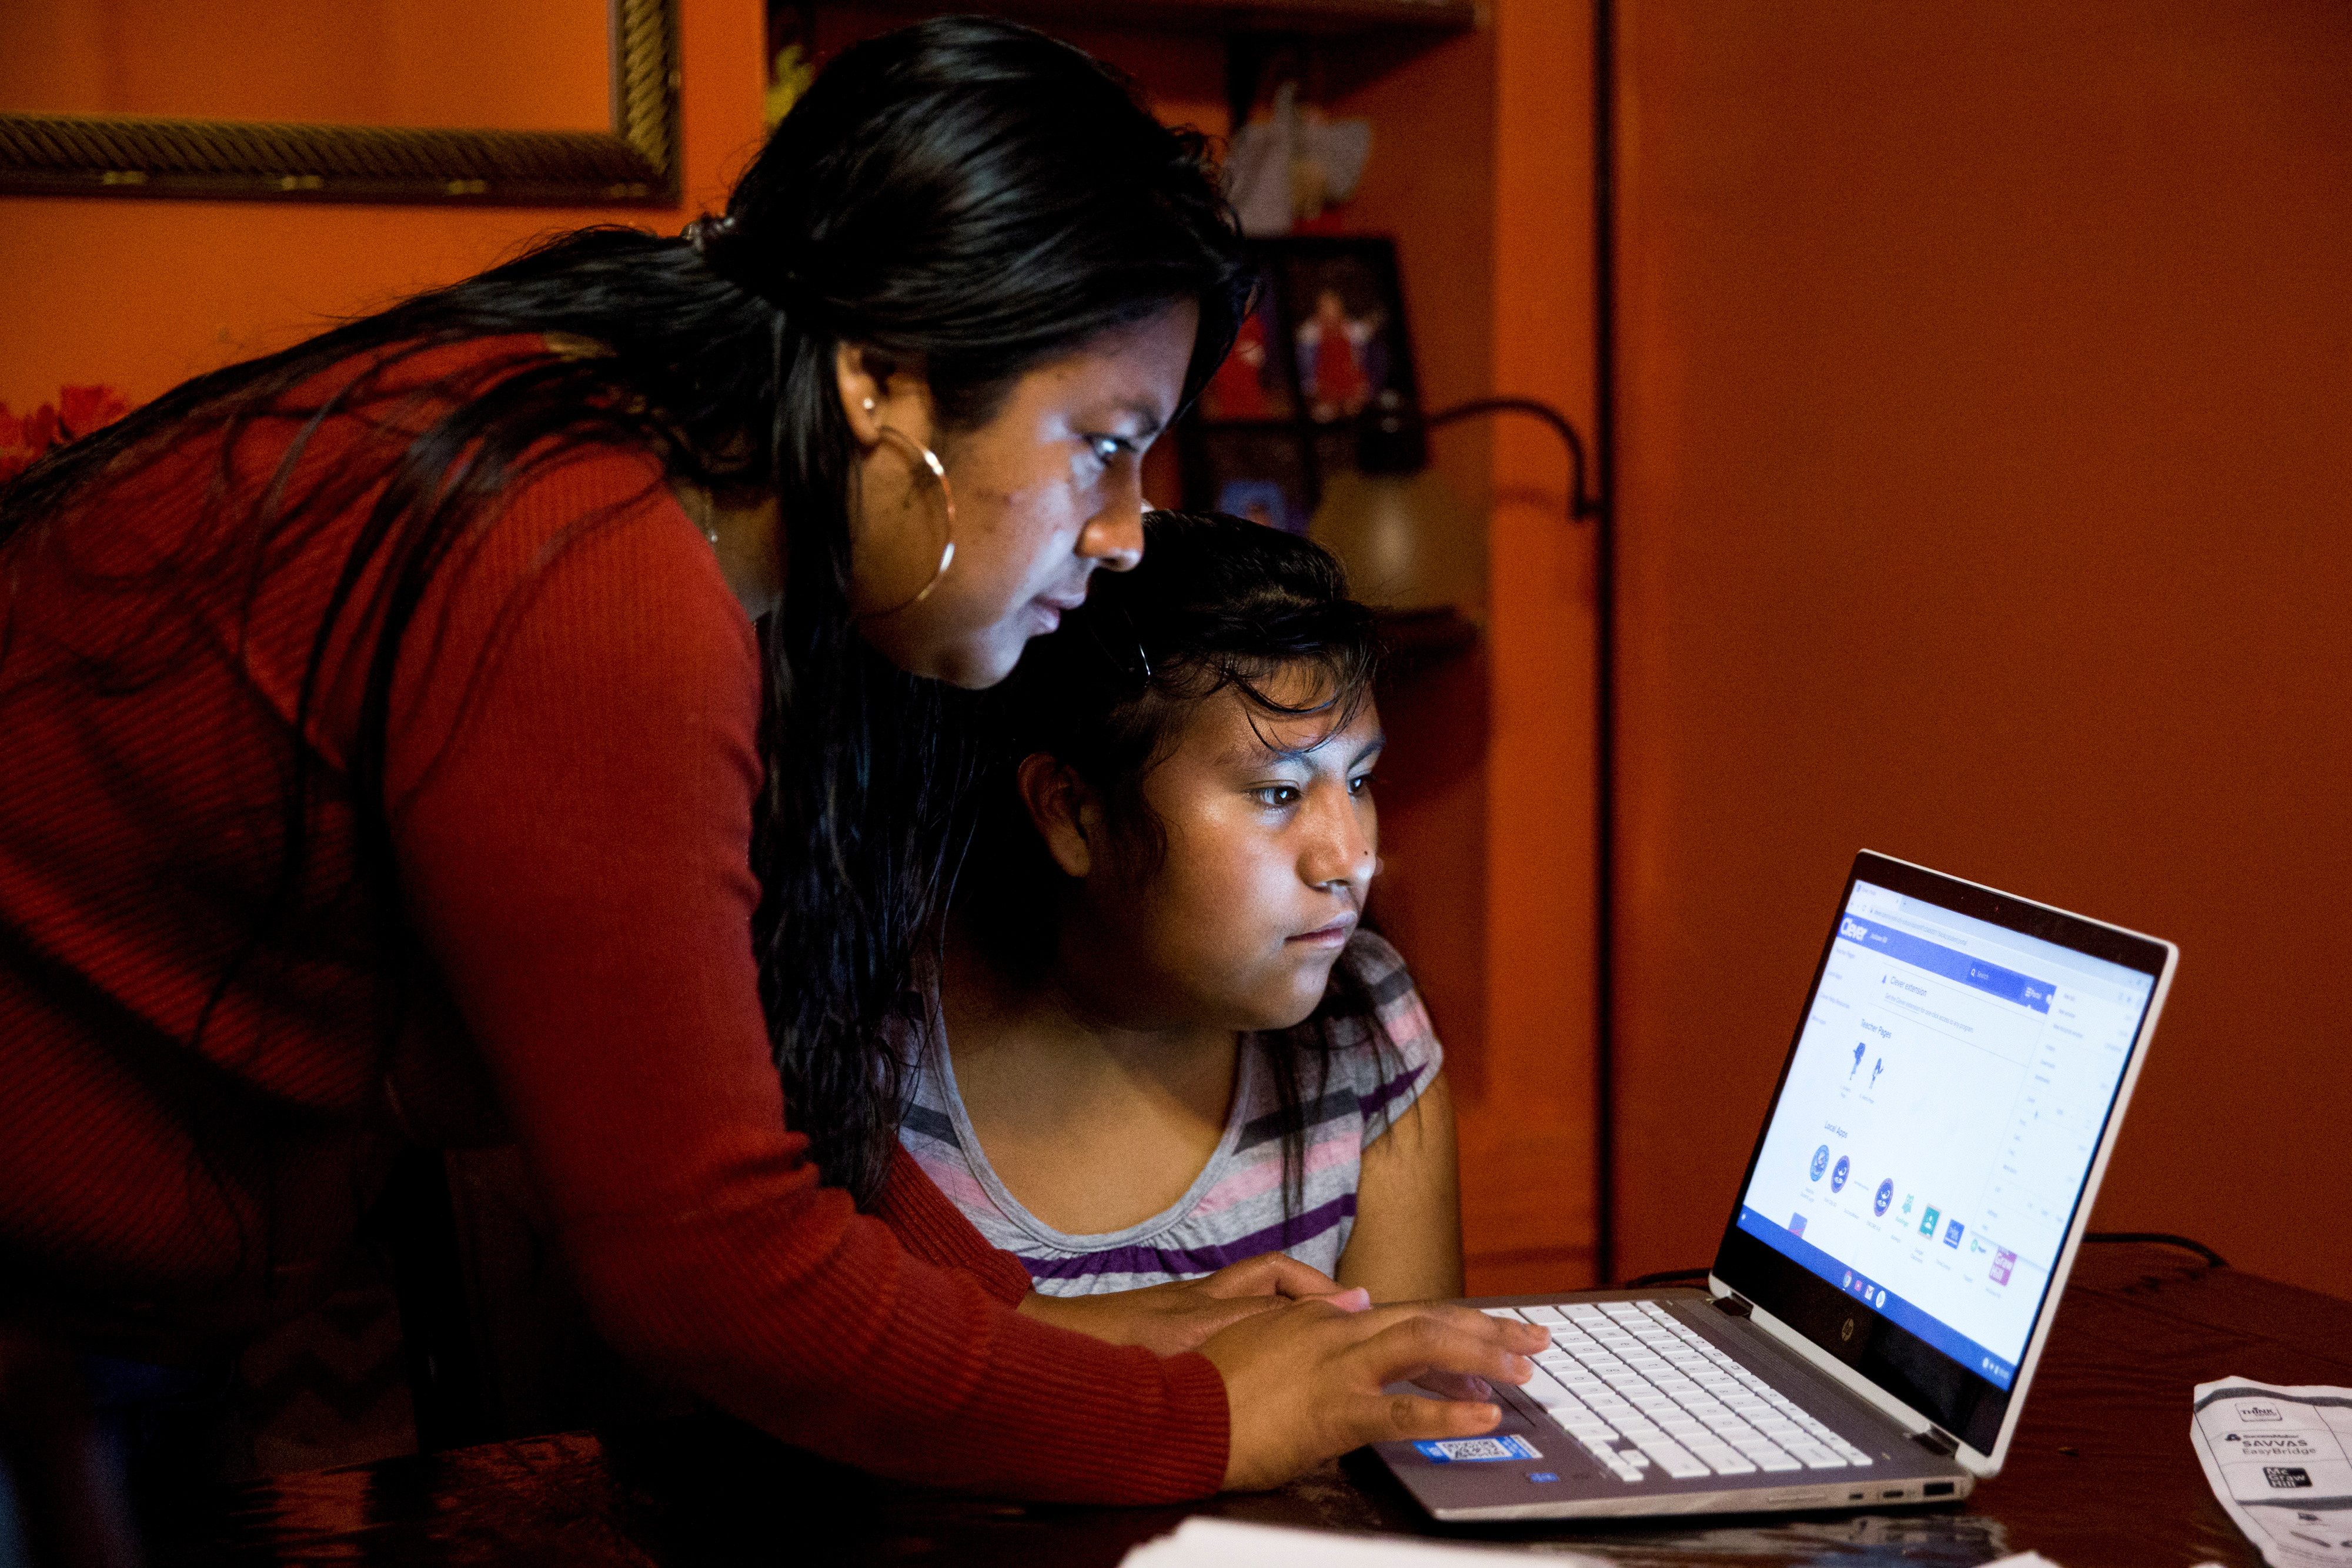 Belen Cruz tries to help her daughter, Natalie, log on to her school's online learning platform at their home in York, Pennsylvania, U.S. September 18, 2020. The online platform would not load for almost an hour, during which Natalie was not able to get any school work done. Picture taken September 18, 2020. REUTERS/Rachel Wisniewski - RC2B8J9V3GRJ